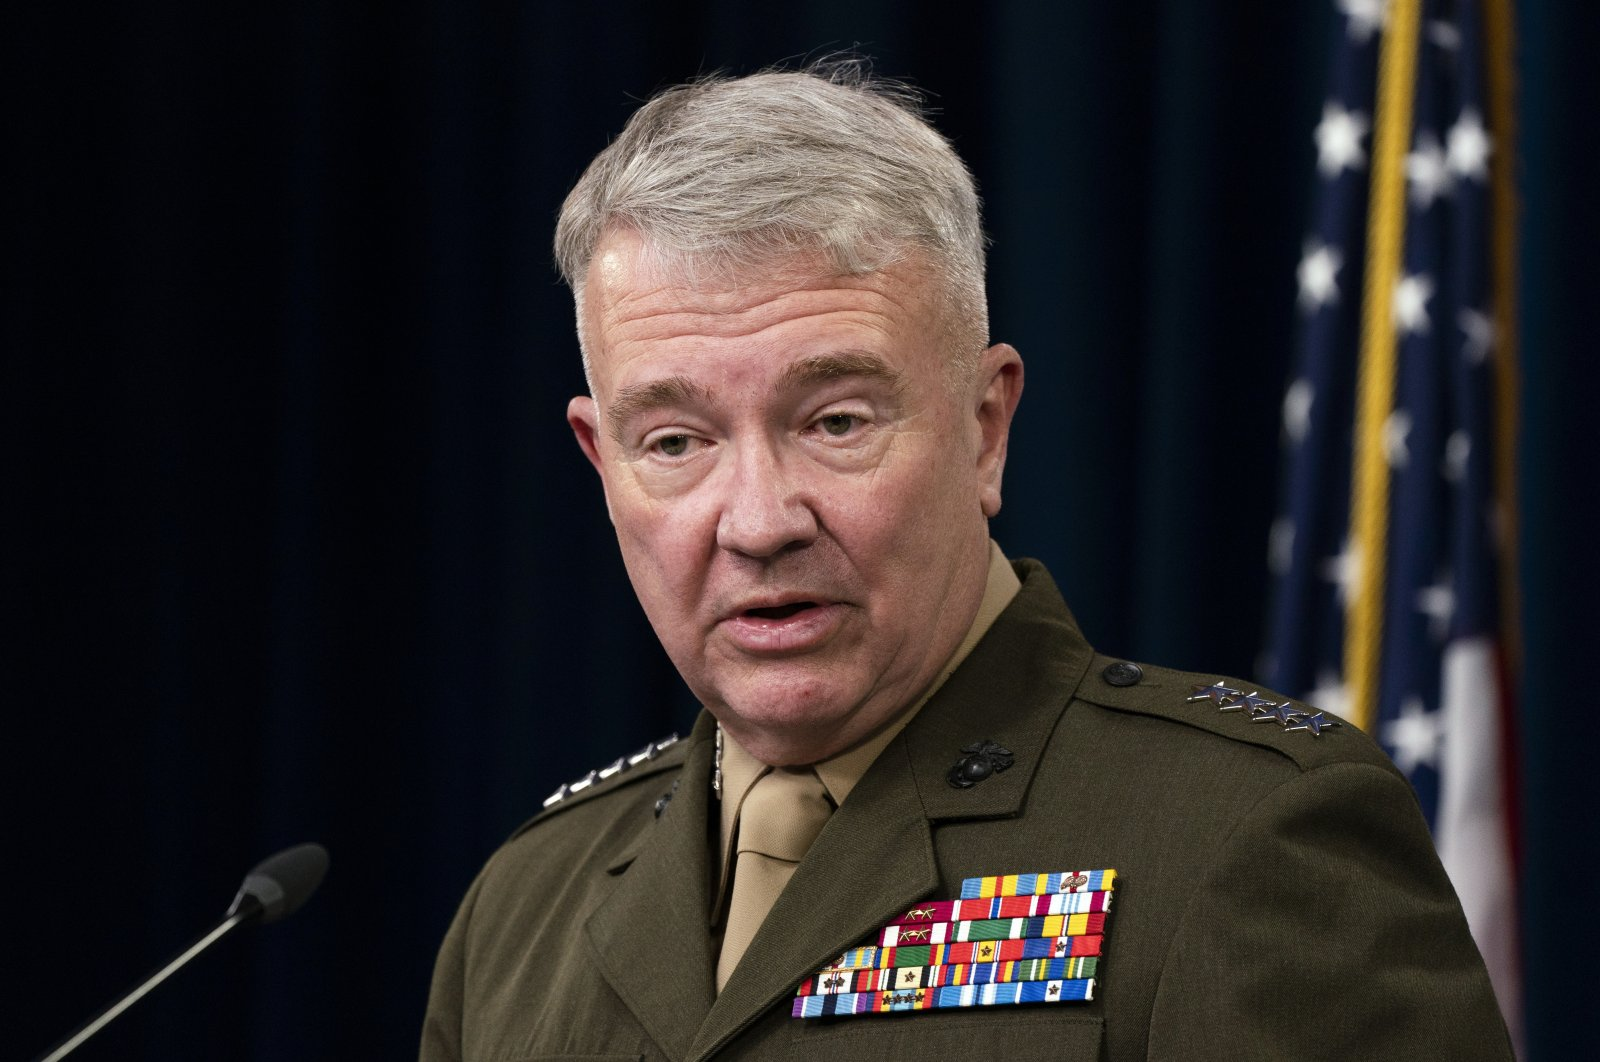 Gen. Kenneth McKenzie Jr., commander of the United States Central Command, speaks during a briefing at the Pentagon in Washington, U.S., April 22, 2021. (AP Photo)